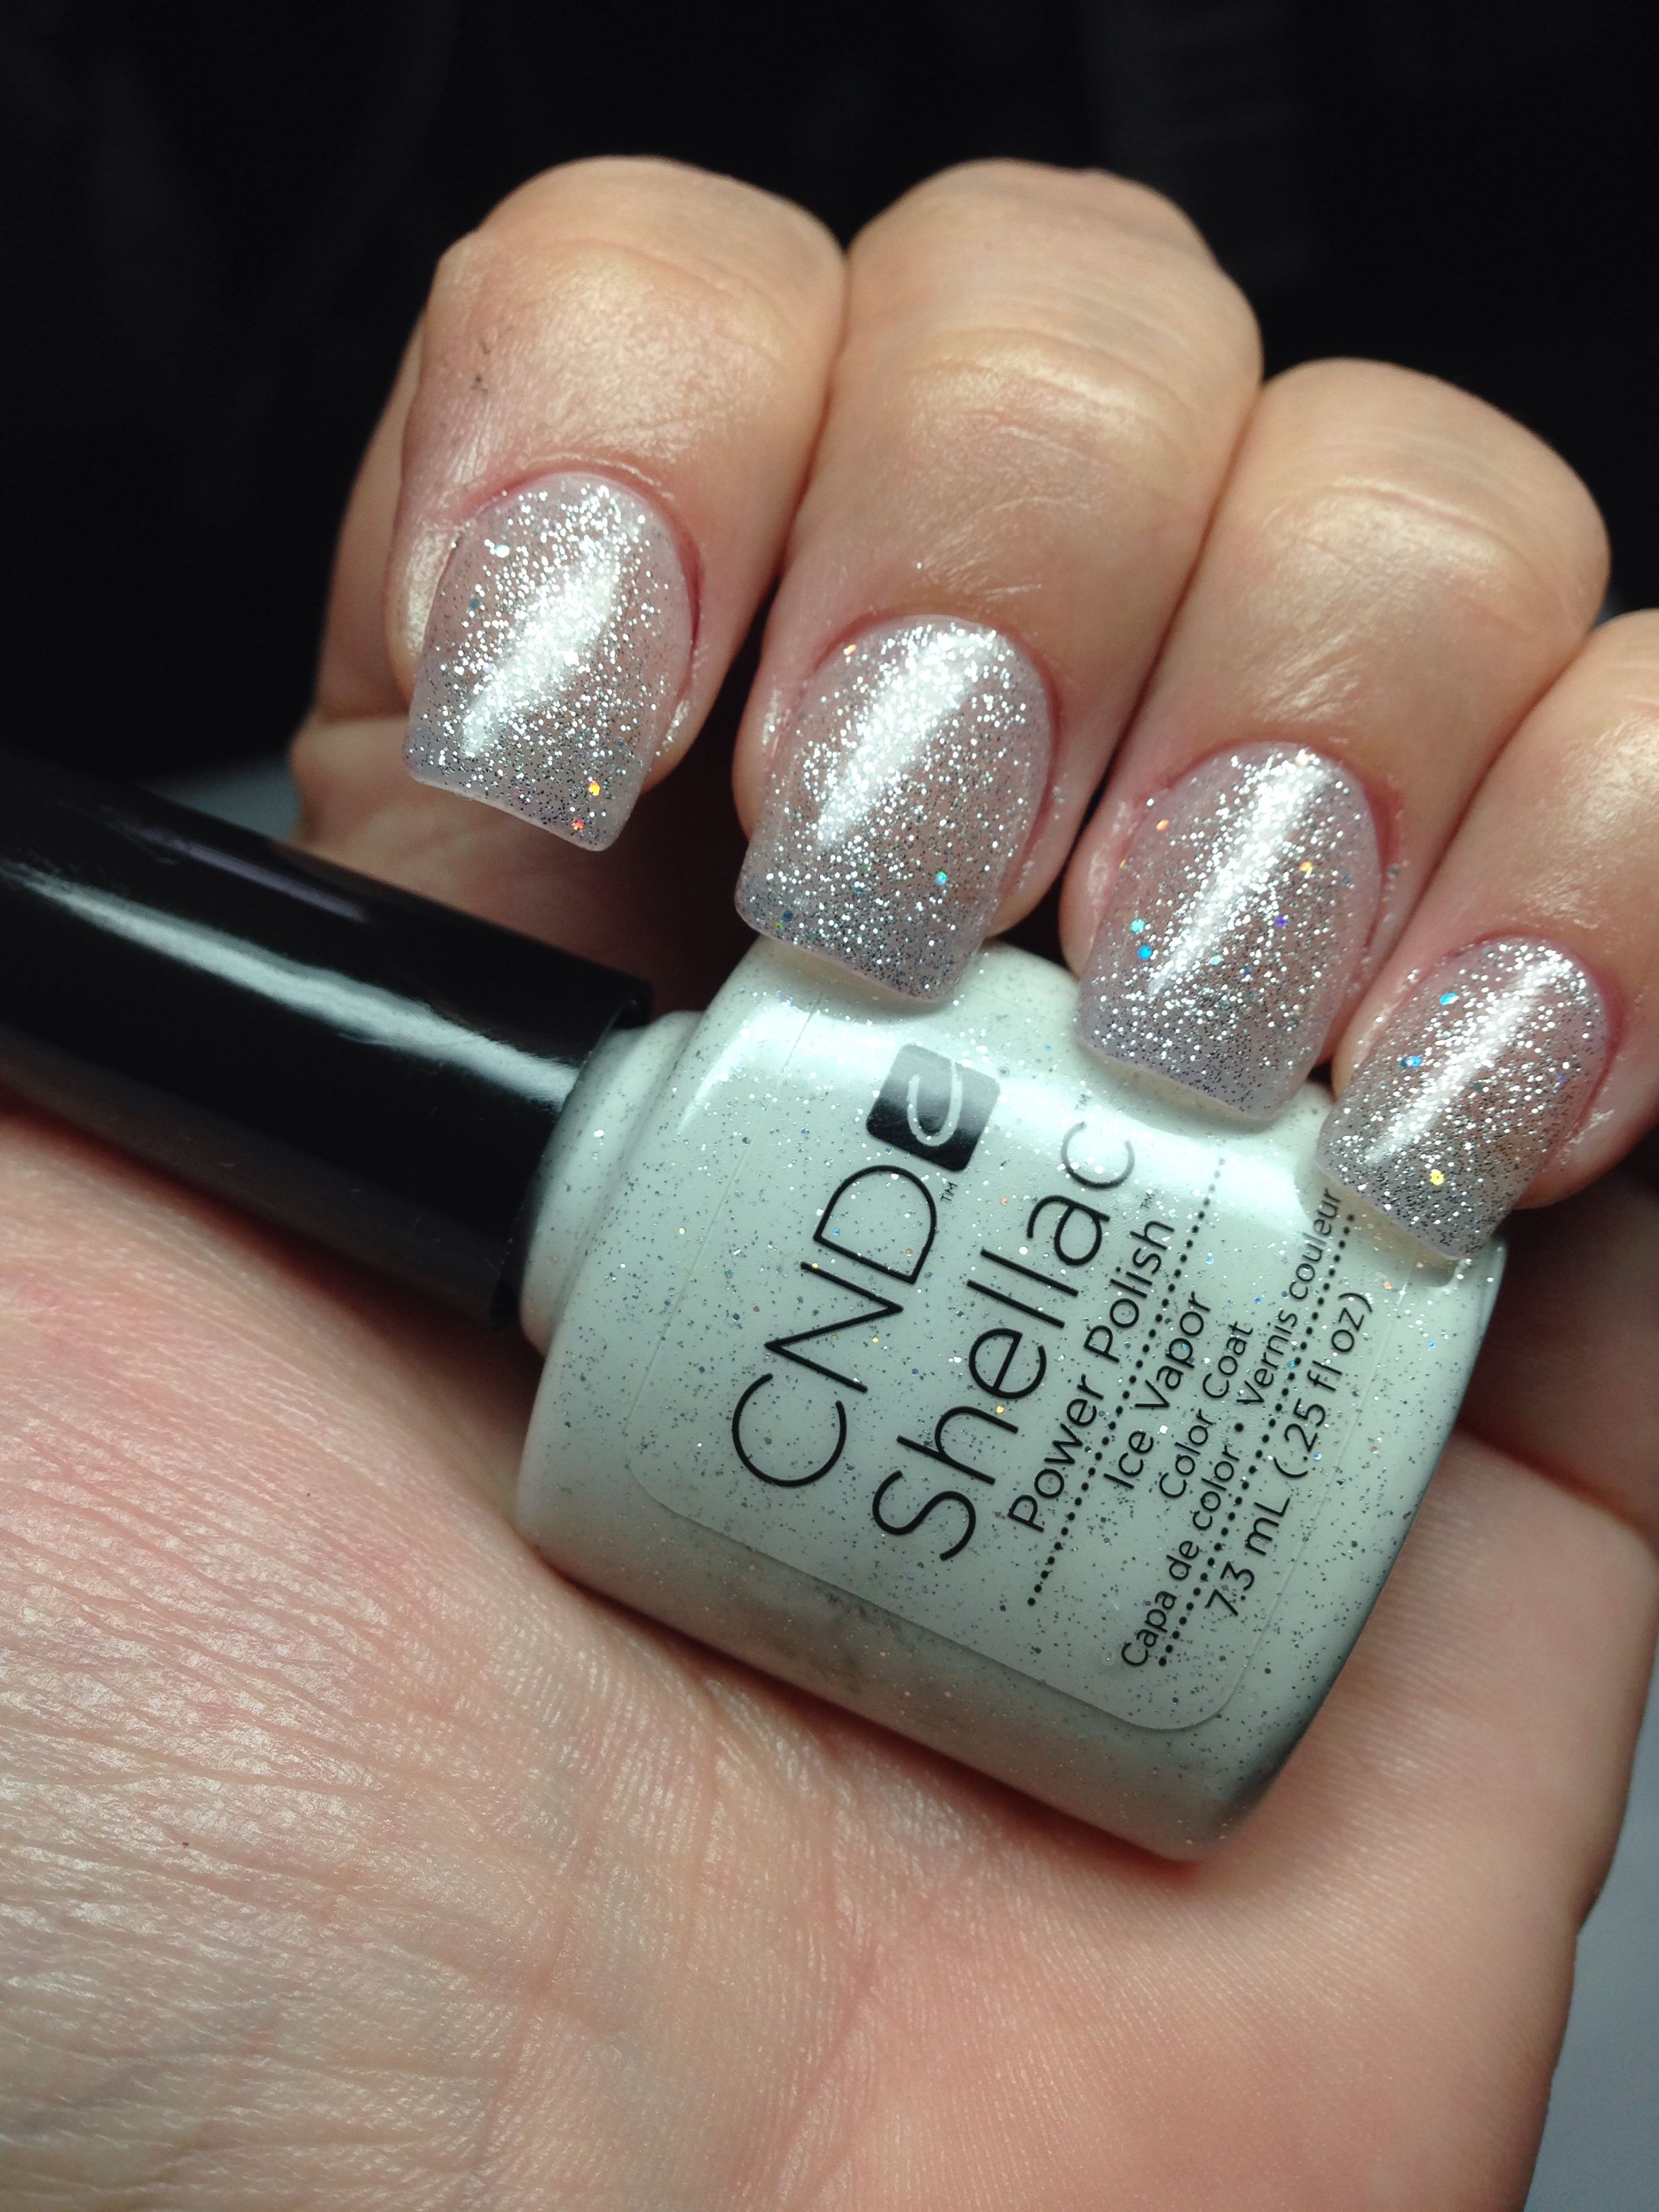 Cnd Shellac Ice Vapor Nails Love It One Of Our Favorites Here At La Salon Nehty